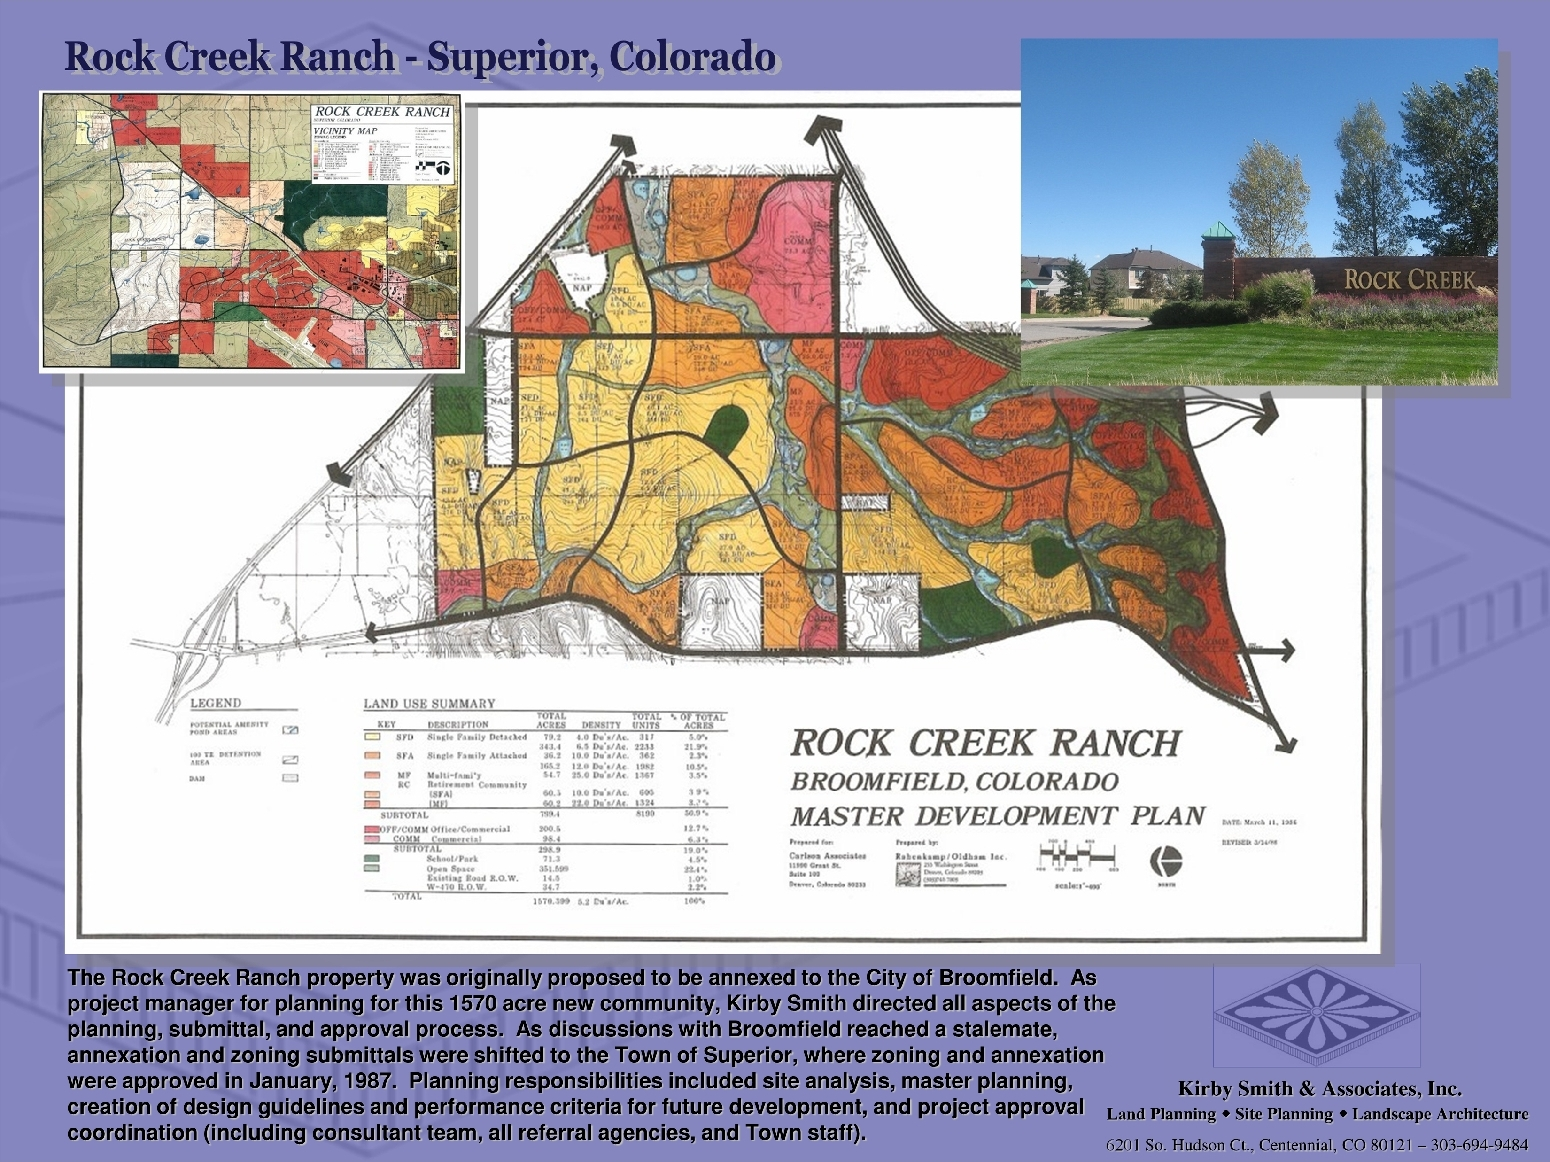 Rock Creek Ranch was originally proposed to be annexed to the City of Broomfield.  As  project manager for planning for this 1570 acre new community, Kirby Smith directed all aspects of the planning, submittal, and approval process.  Annexation and zoning submittals were shifted to the Town of Superior, and approved in 1987.  Responsibilities included site analysis, master planning, creation of design guidelines and performance criteria for development.